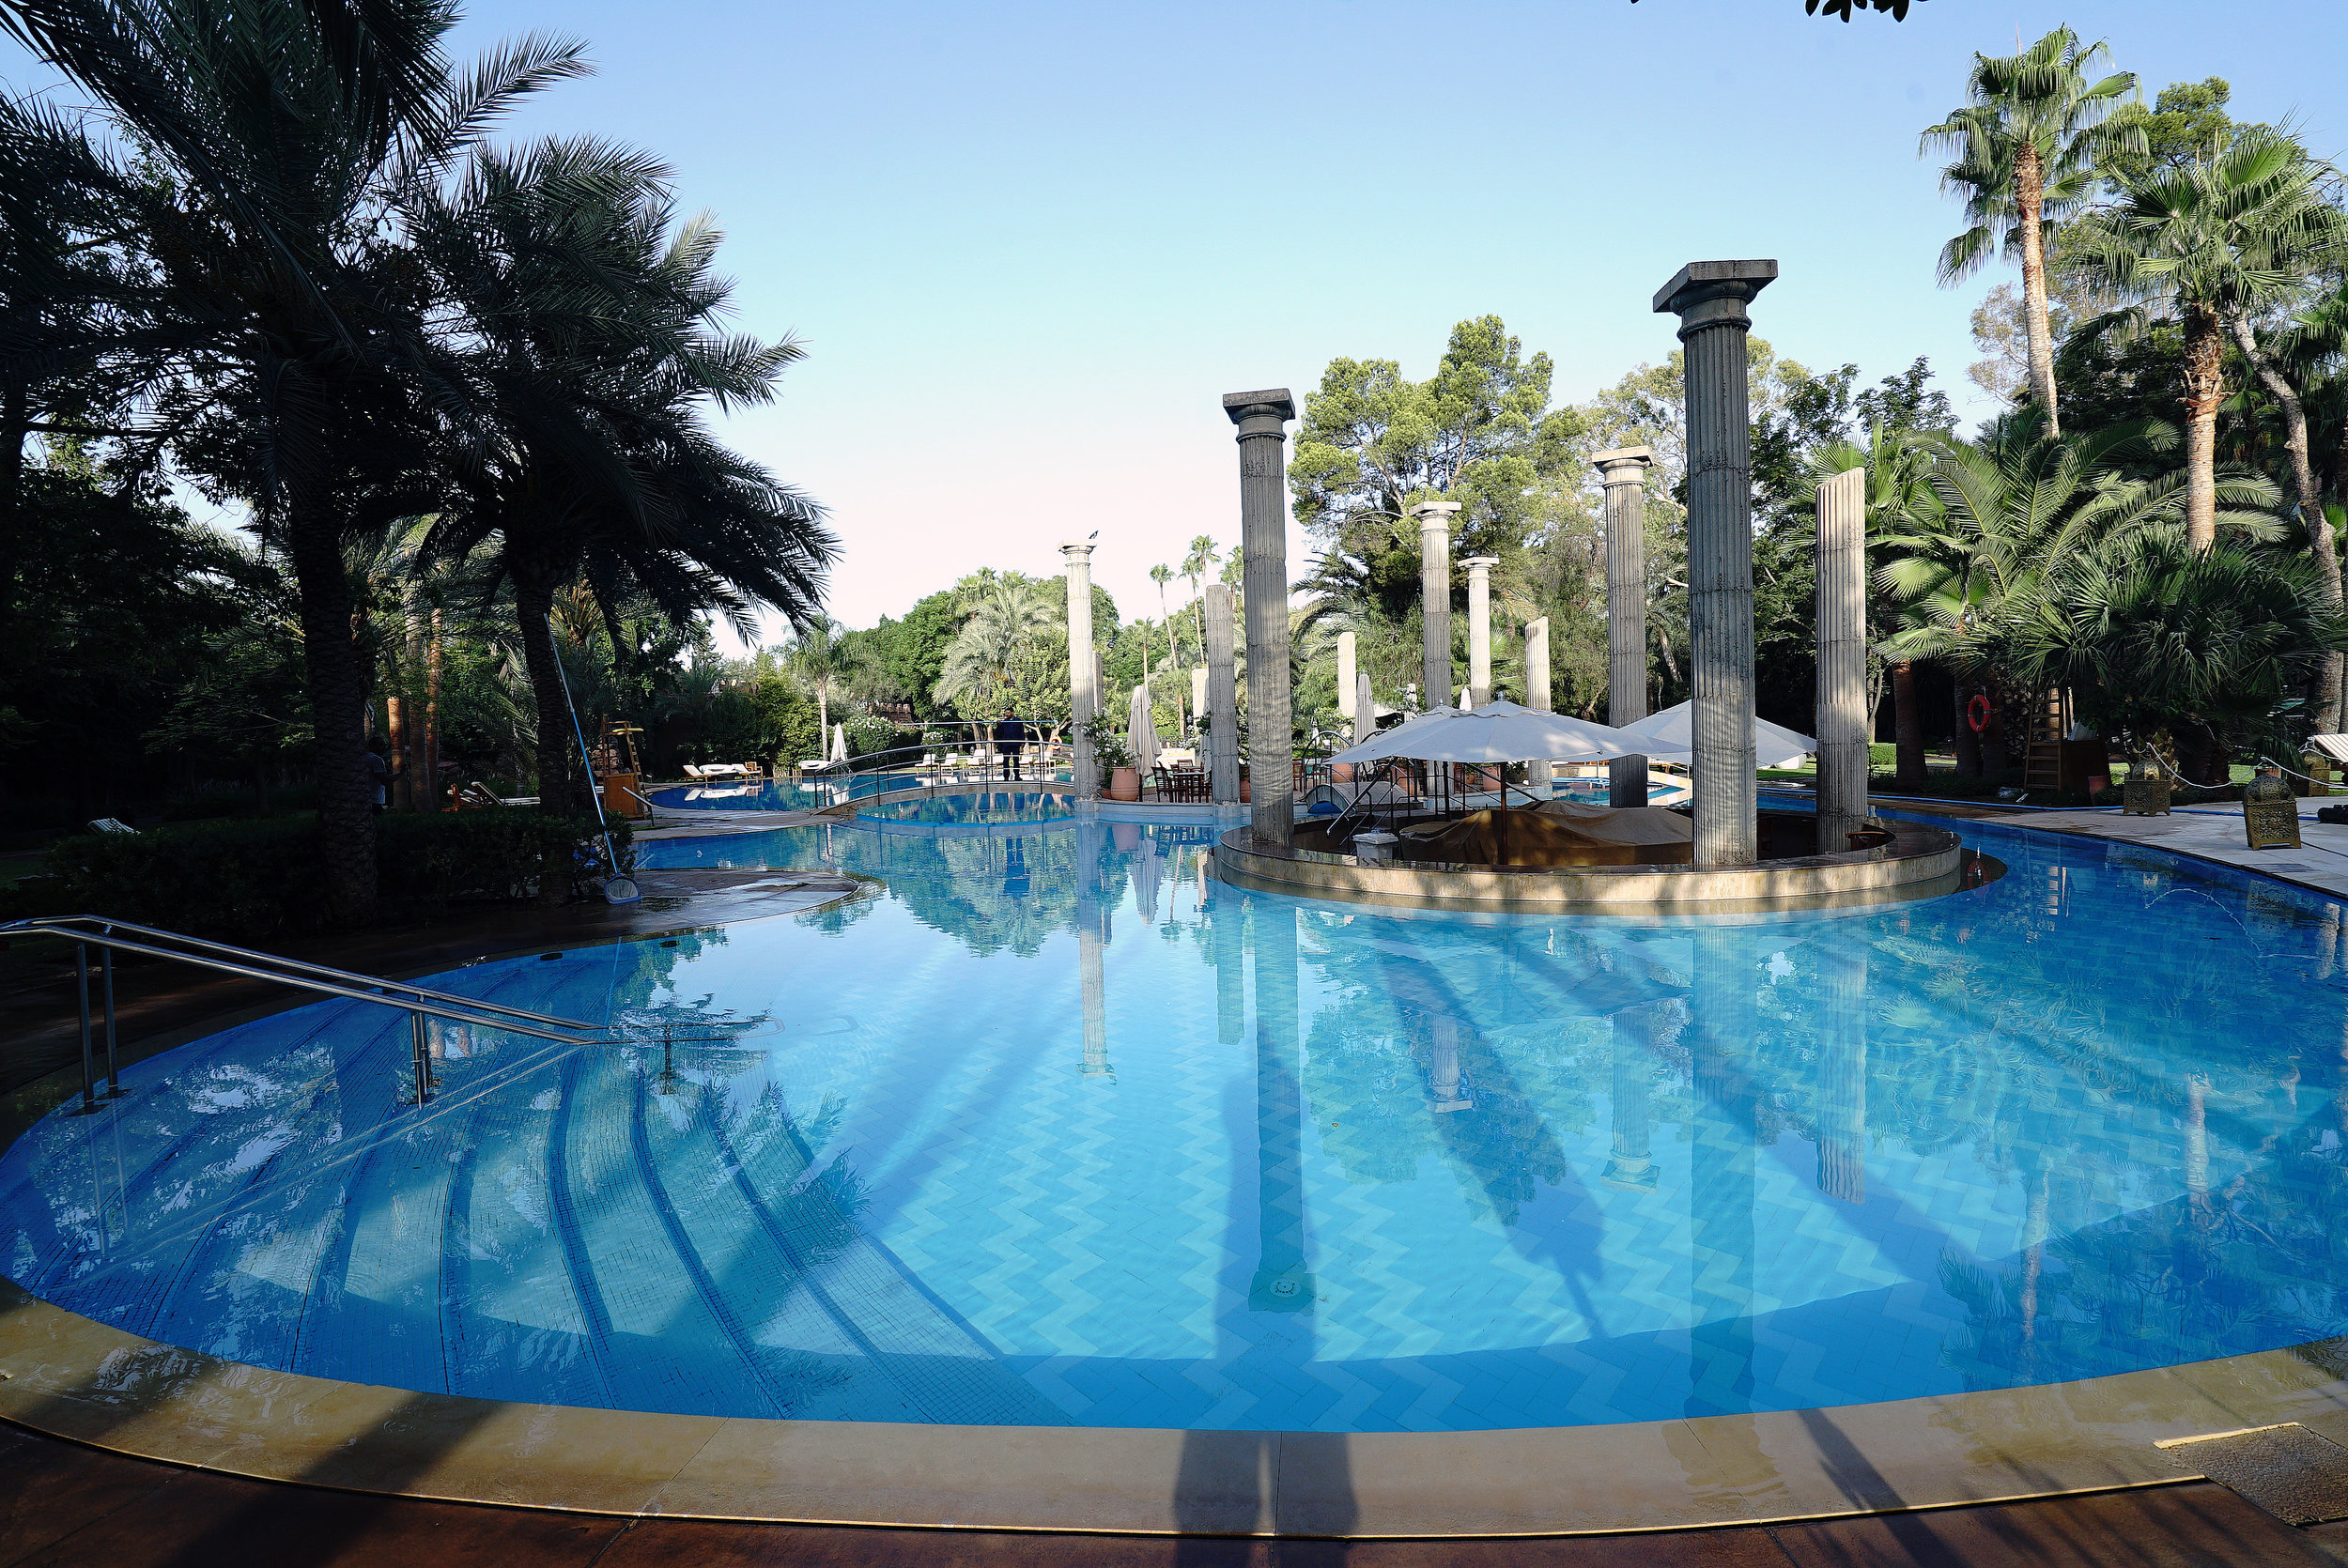 Es Saadi The Palace Swimming Pool 3.jpg